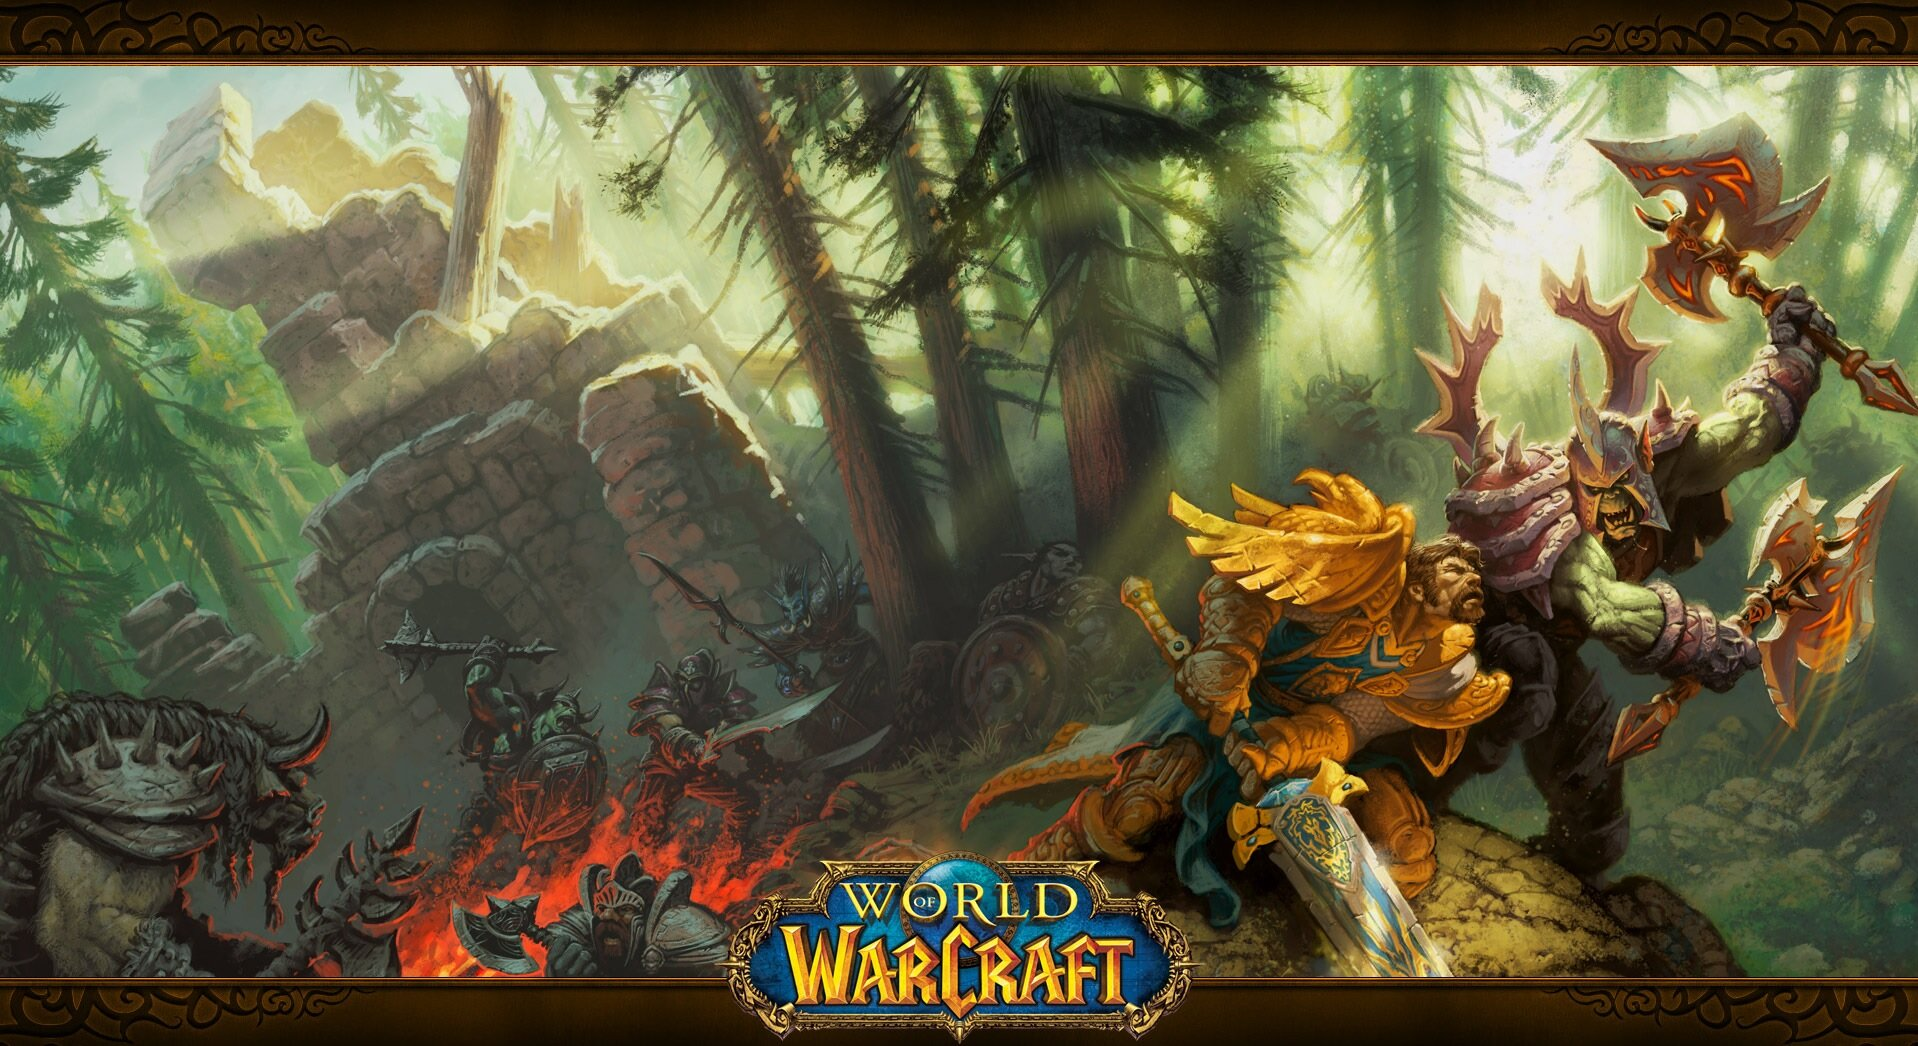 World-of-Warcraft-Classic-Full-Version-PC-2019-Download.jpg